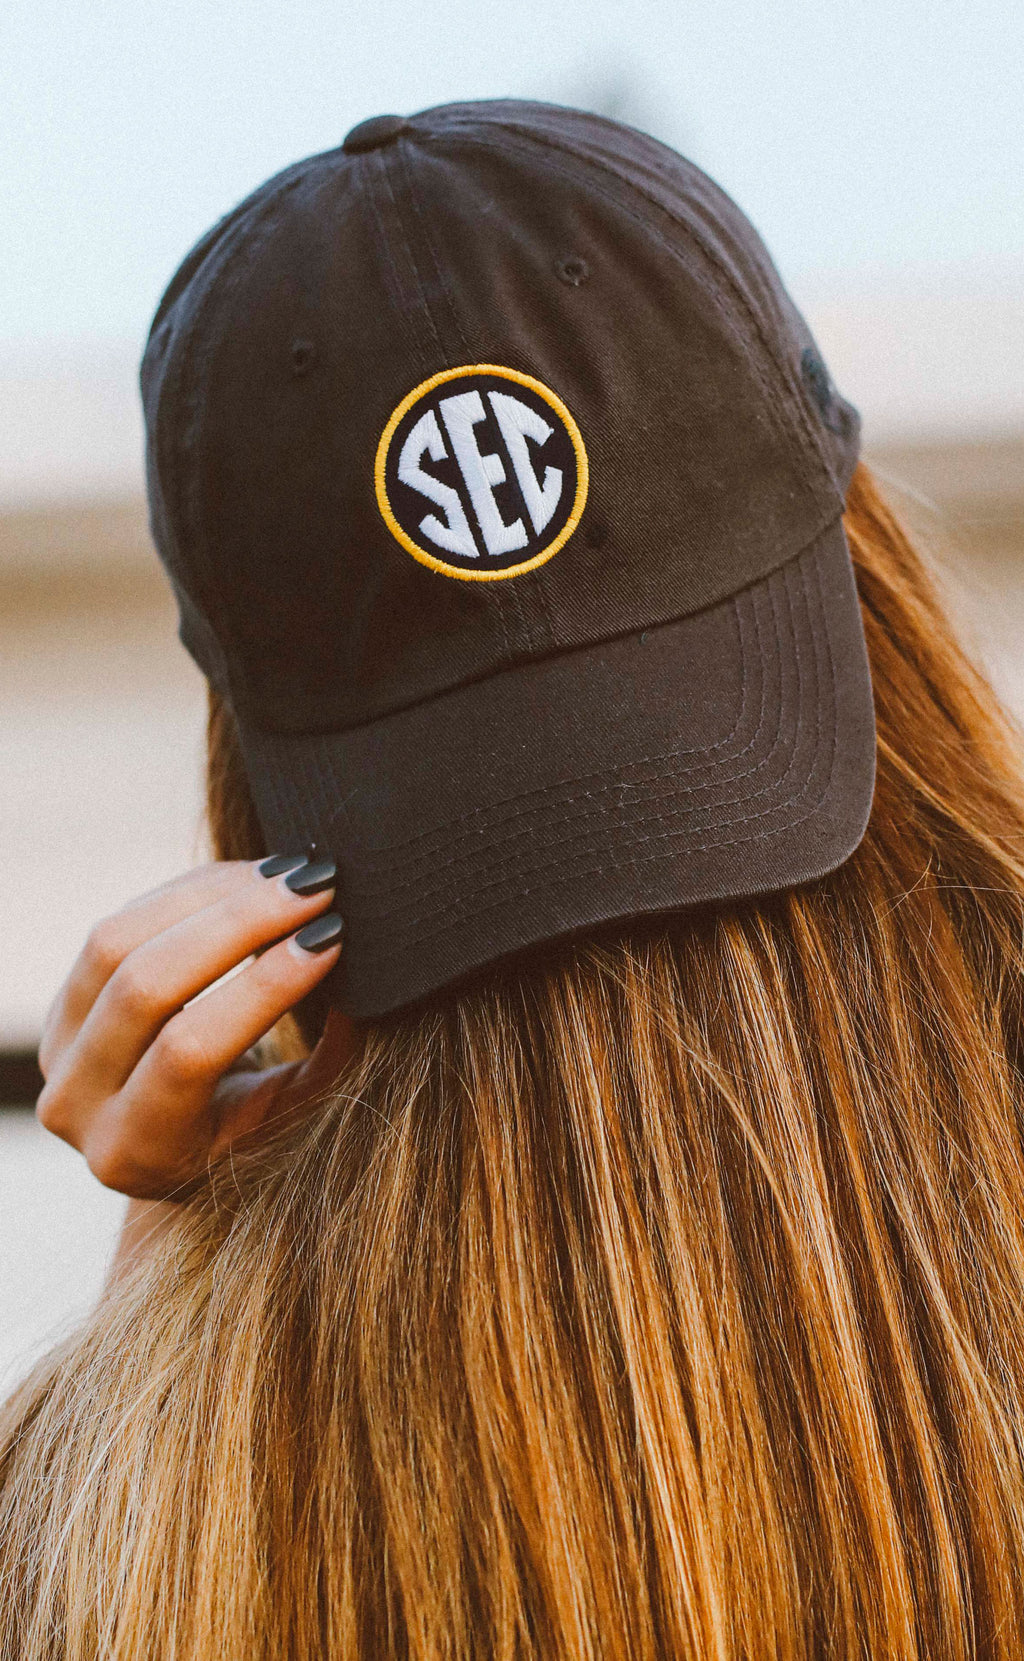 charlie southern: SEC hat - charcoal